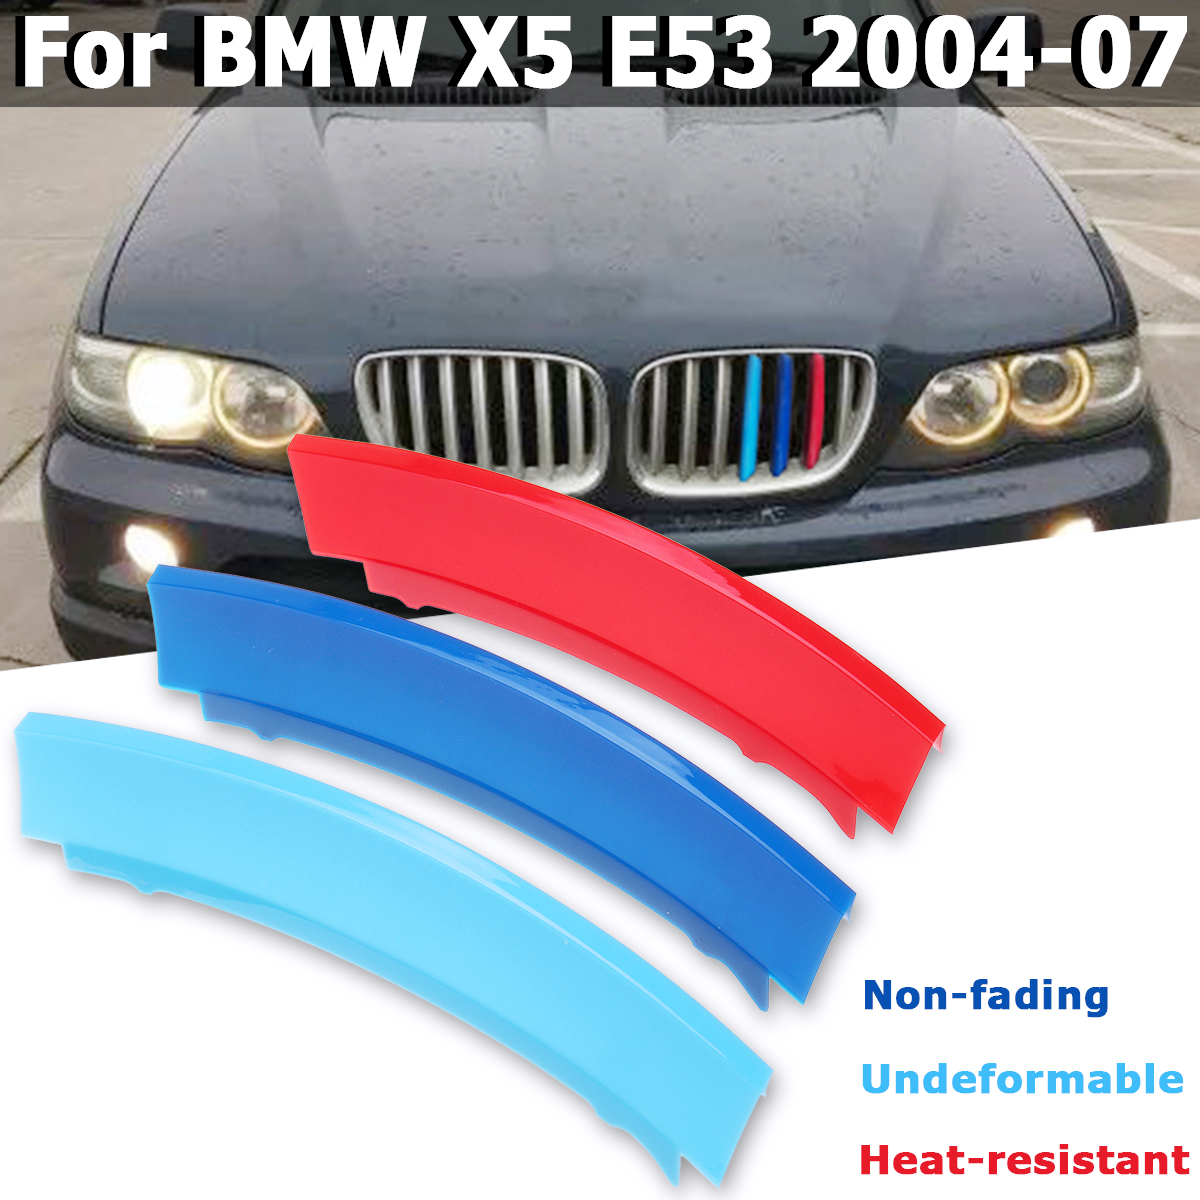 Car Styling For BMW X5 E53 2004-2007 Accessories 7Bar 3D Sticker Car Front Kidney Grill Grille Trim Sport Strips Clip Cover